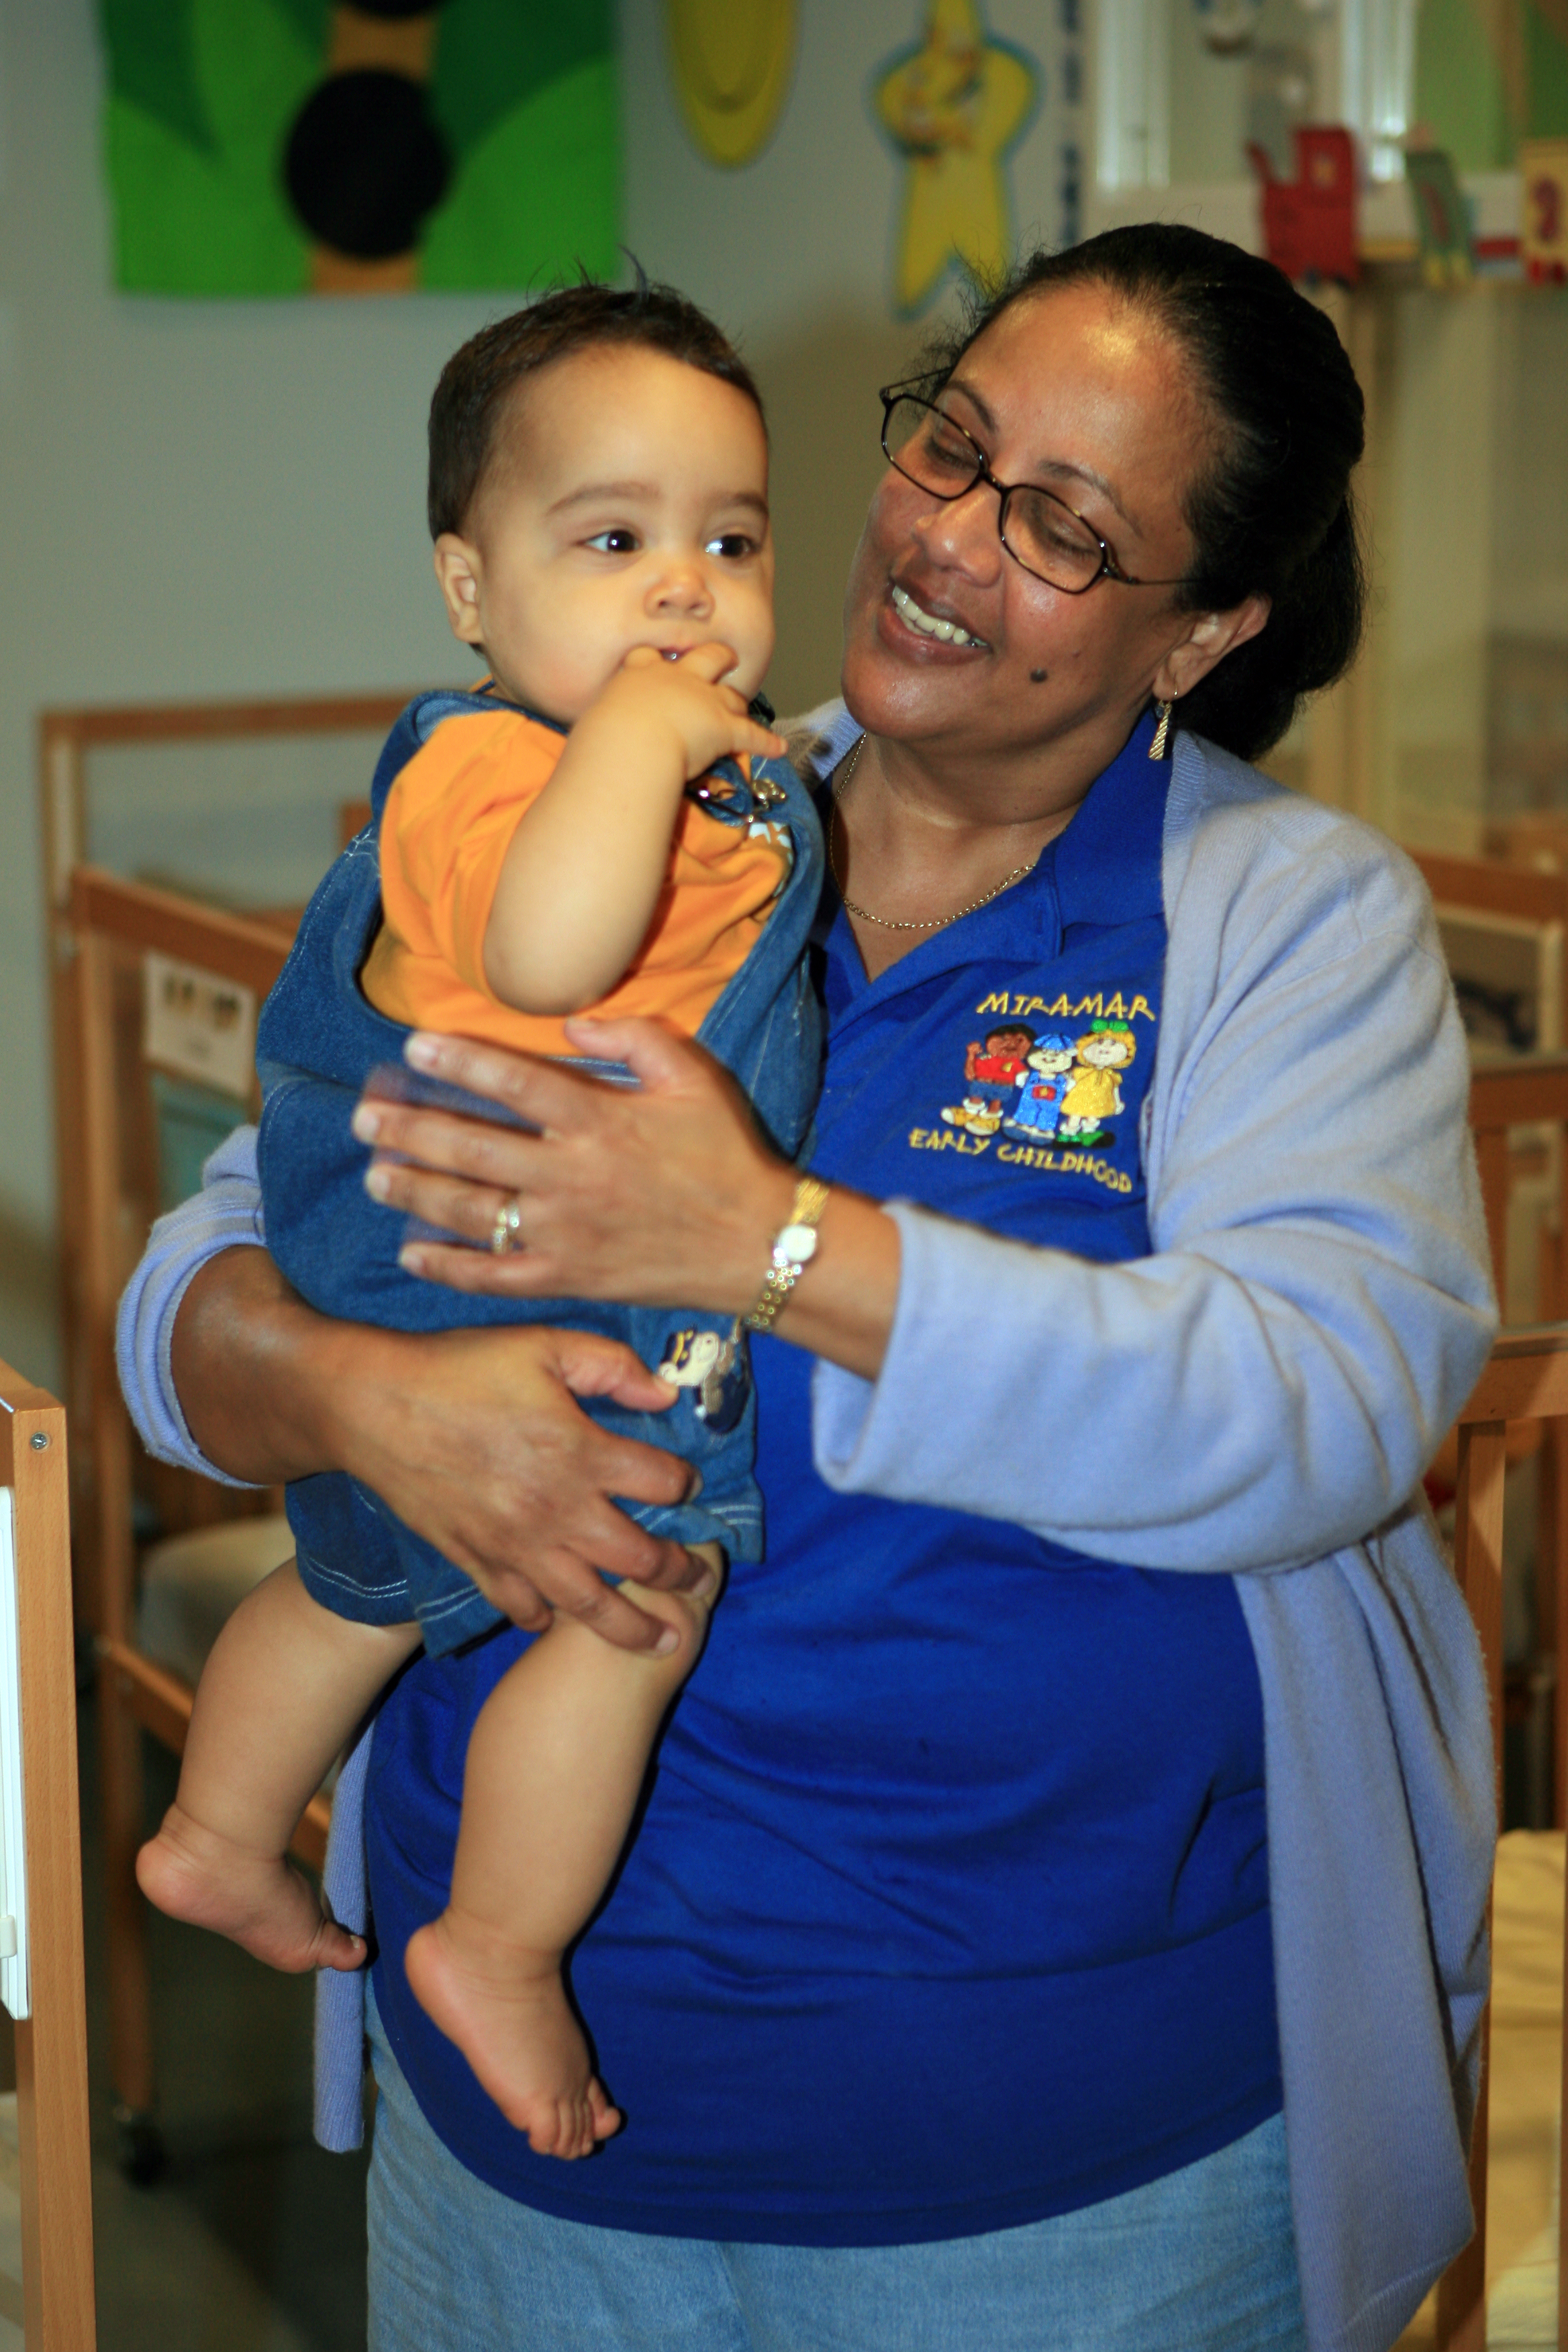 An infant being held by a woman in an early childhood work shirt